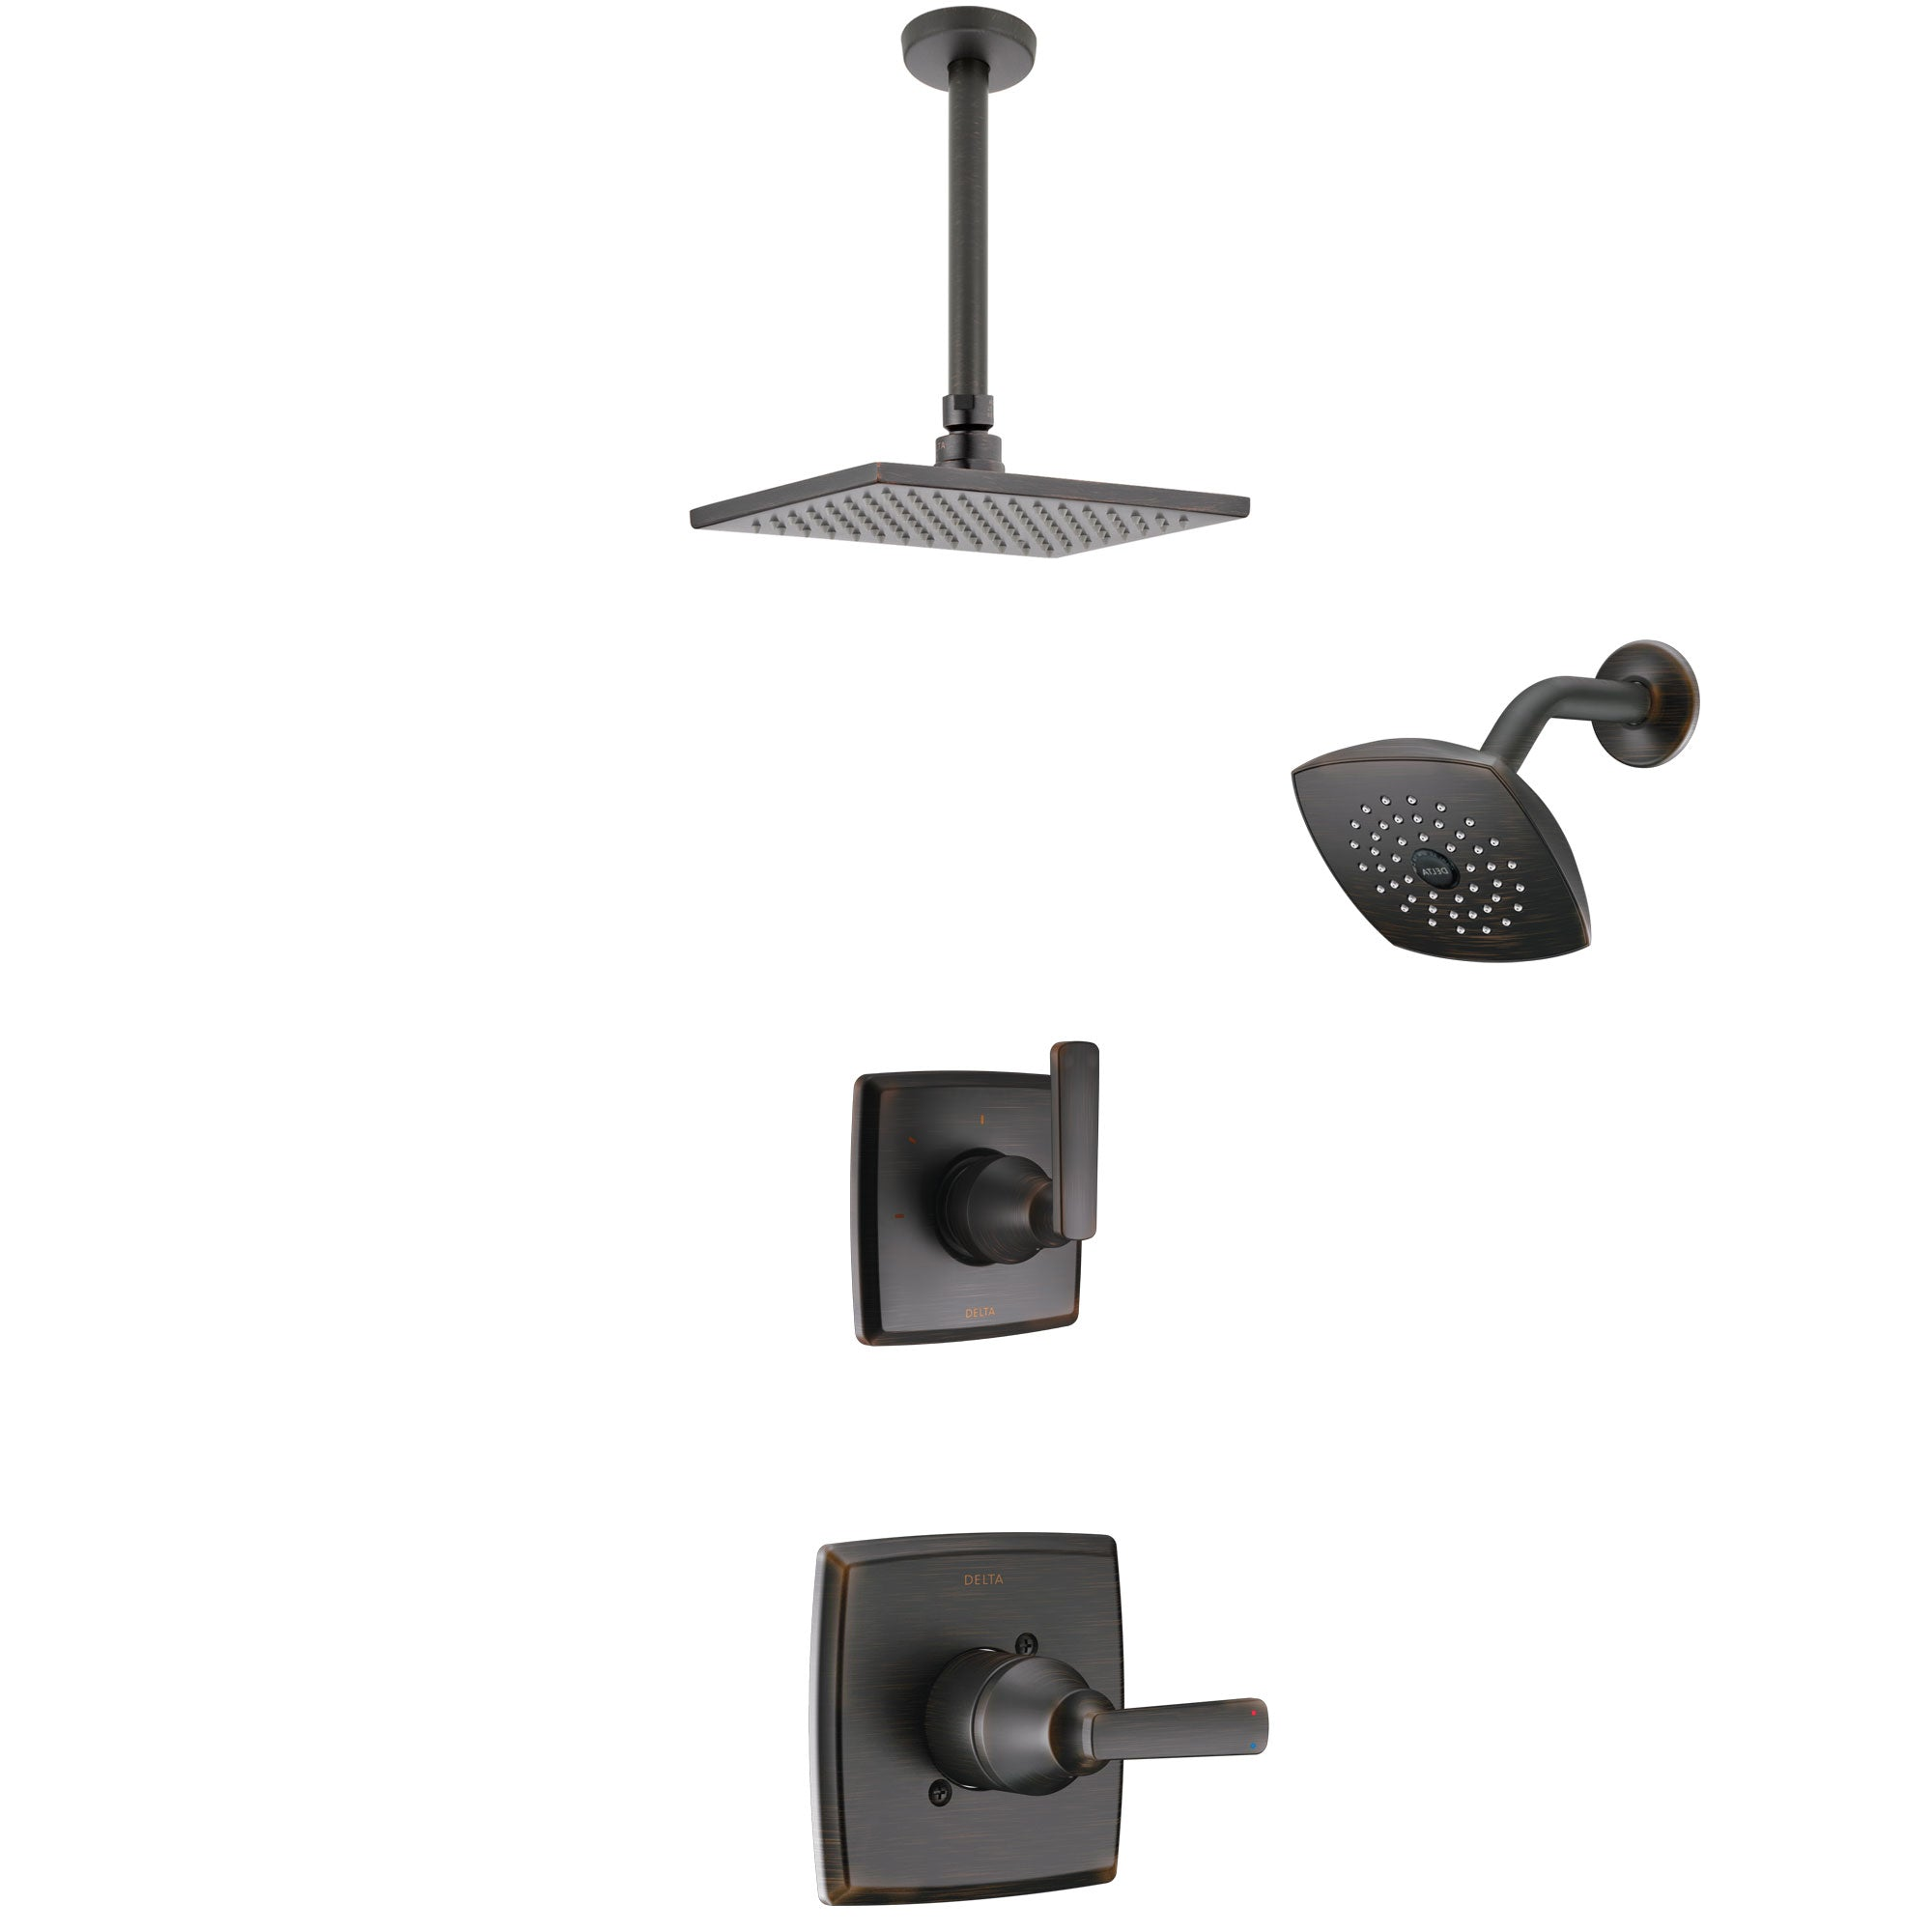 Delta Ashlyn Venetian Bronze Finish Shower System with Control Handle, 3-Setting Diverter, Showerhead, and Ceiling Mount Showerhead SS142641RB5